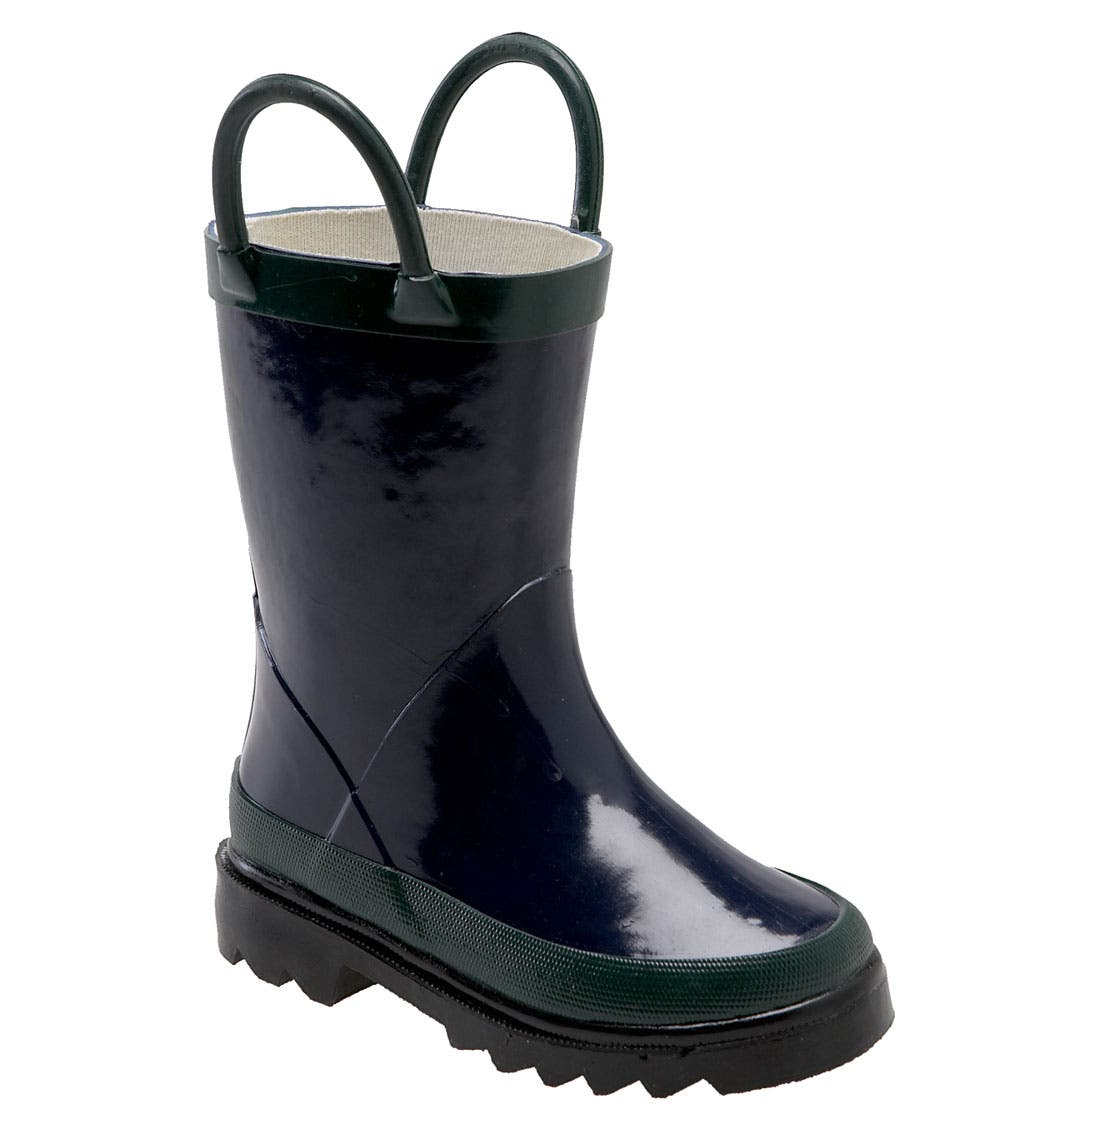 Alternate Image 1 Selected - Western Chief 'Classic' Rain Boot (Walker, Toddler, Little Kid & Big Kid)